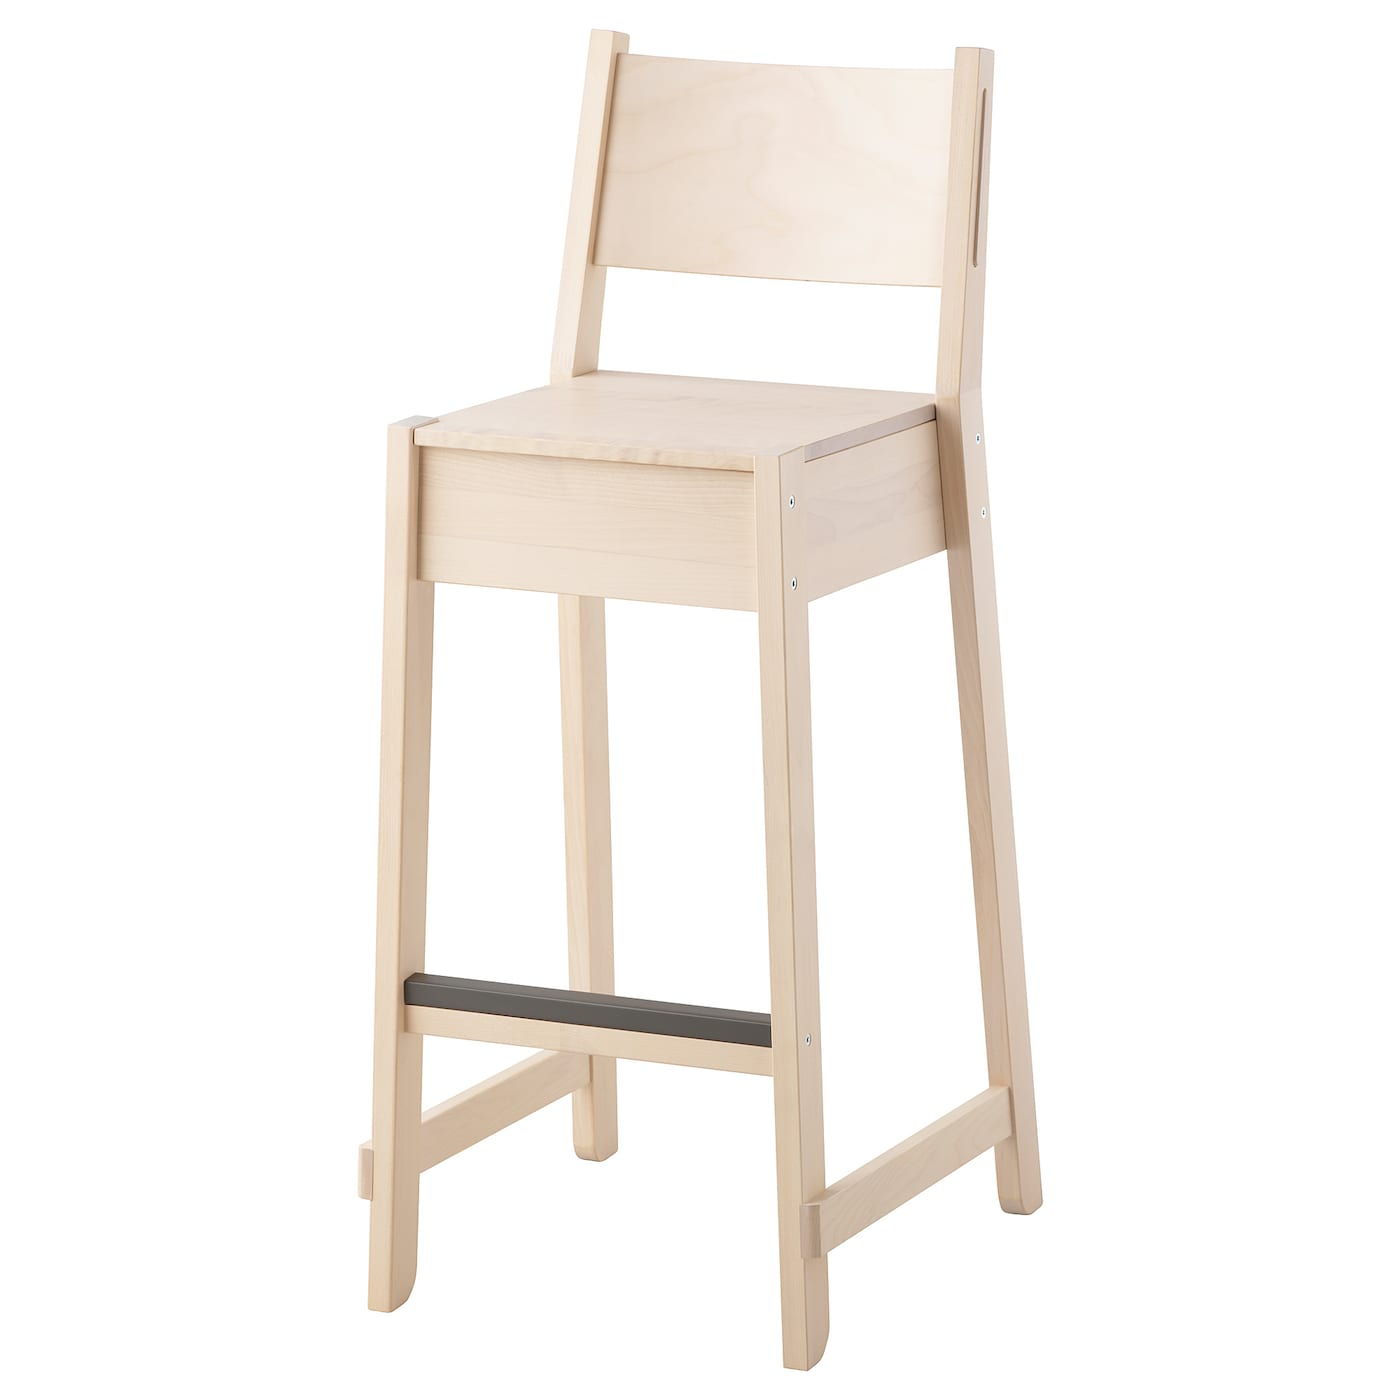 IKEA NORRÅKER bar stool with backrest Solid birch is a hardwearing natural material.